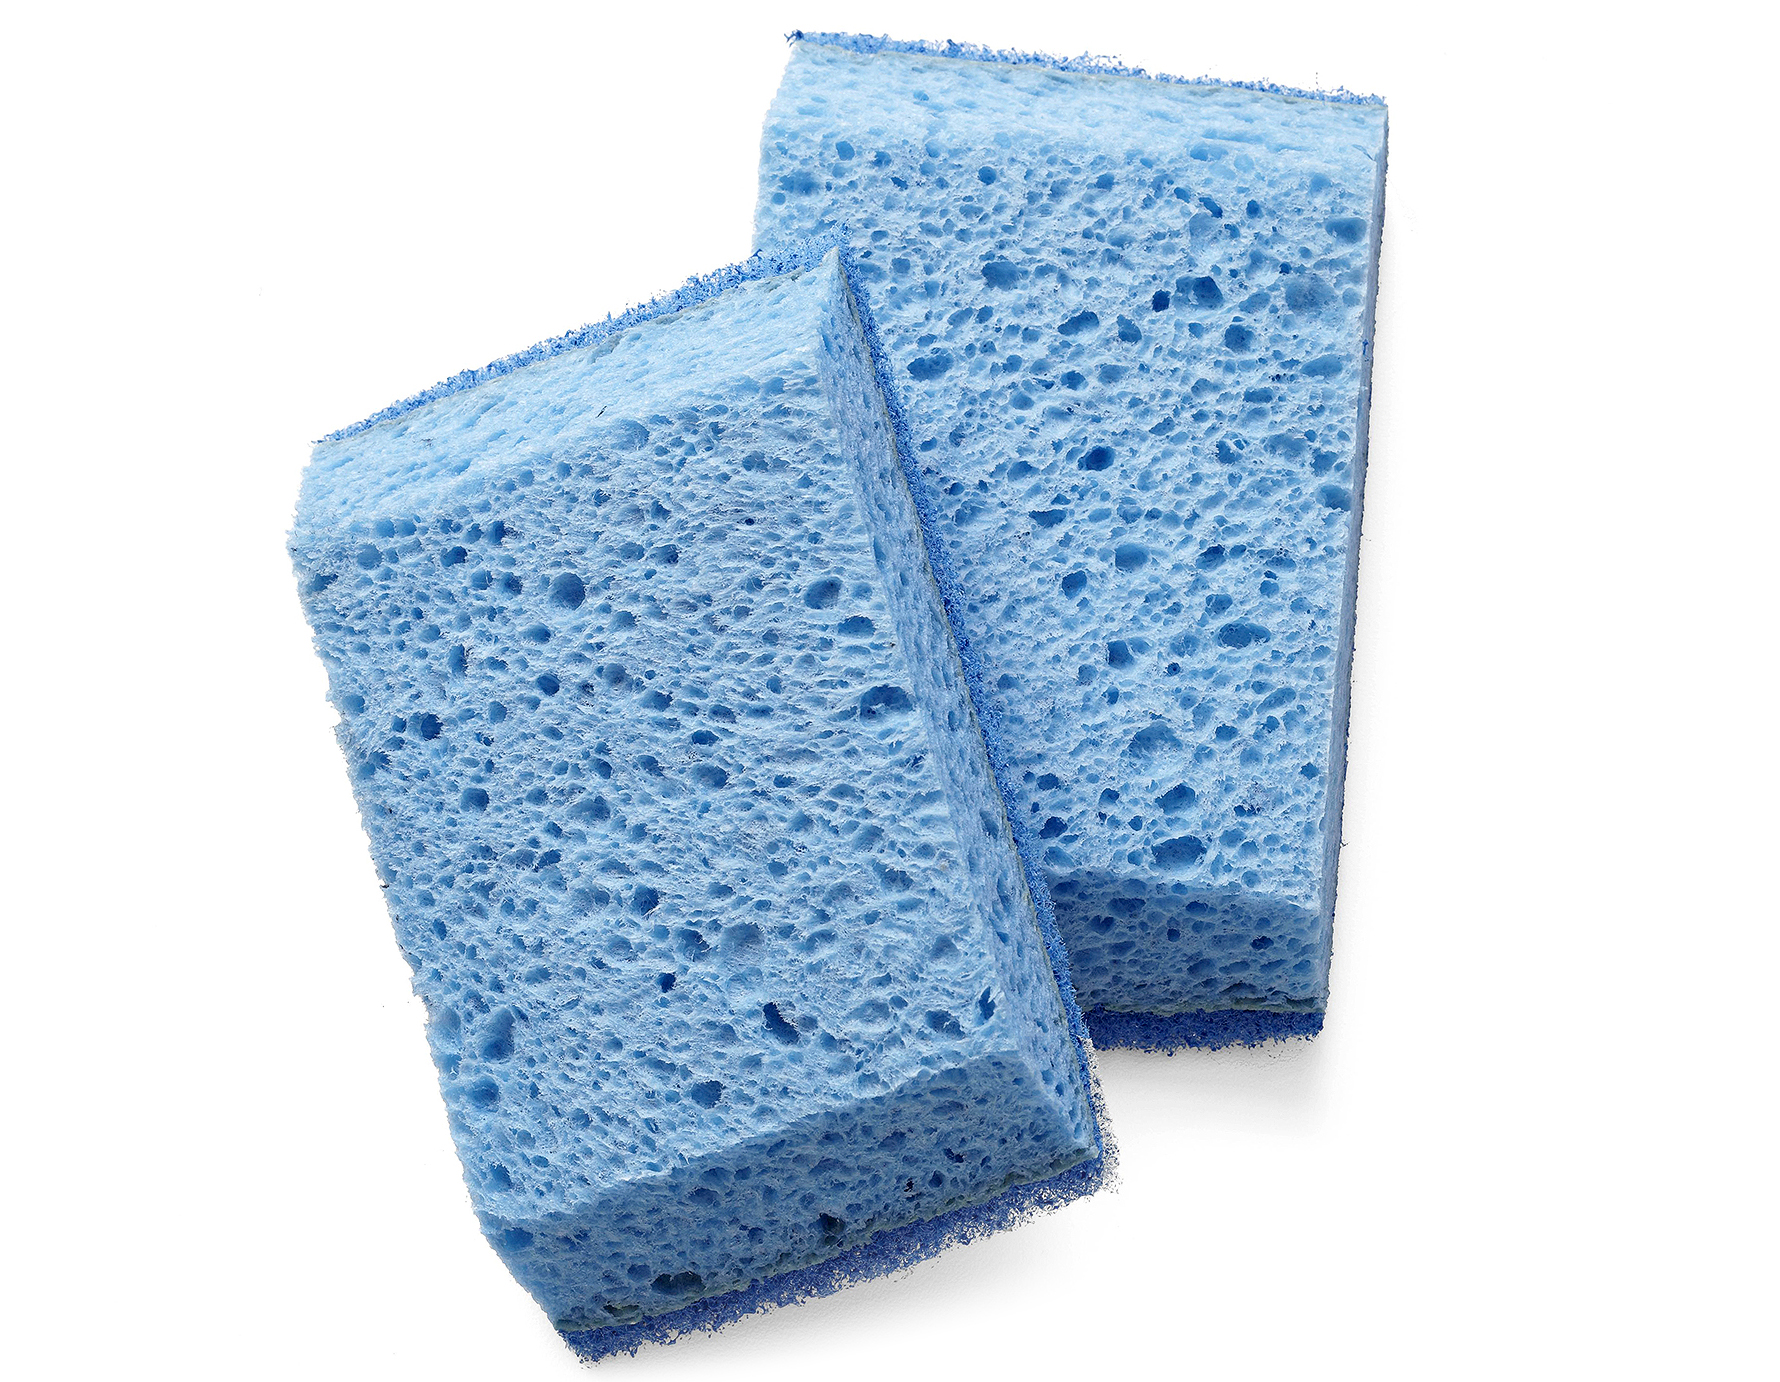 two blue angled kitchen sponges